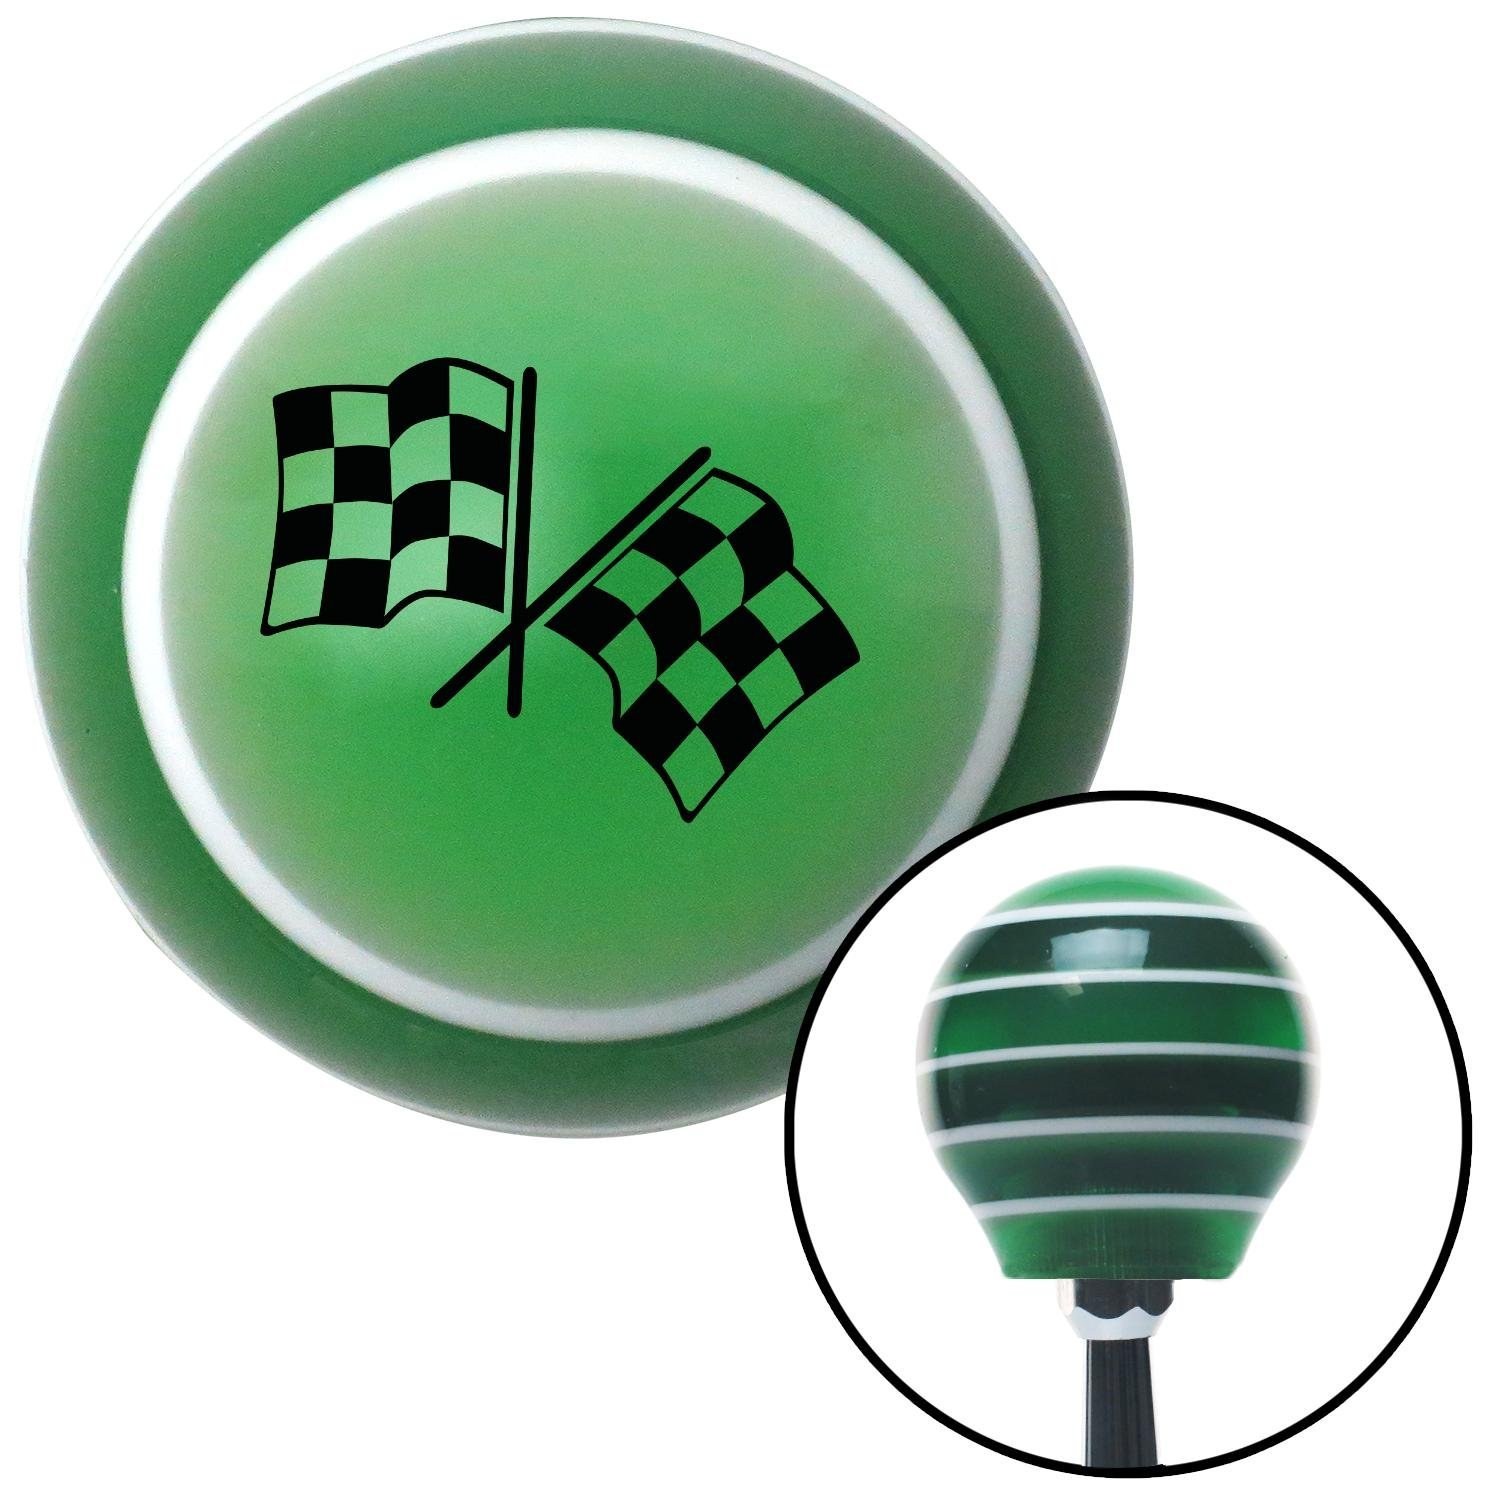 American Shifter 128471 Green Stripe Shift Knob with M16 x 1.5 Insert Black 2 Checkered Race Flags